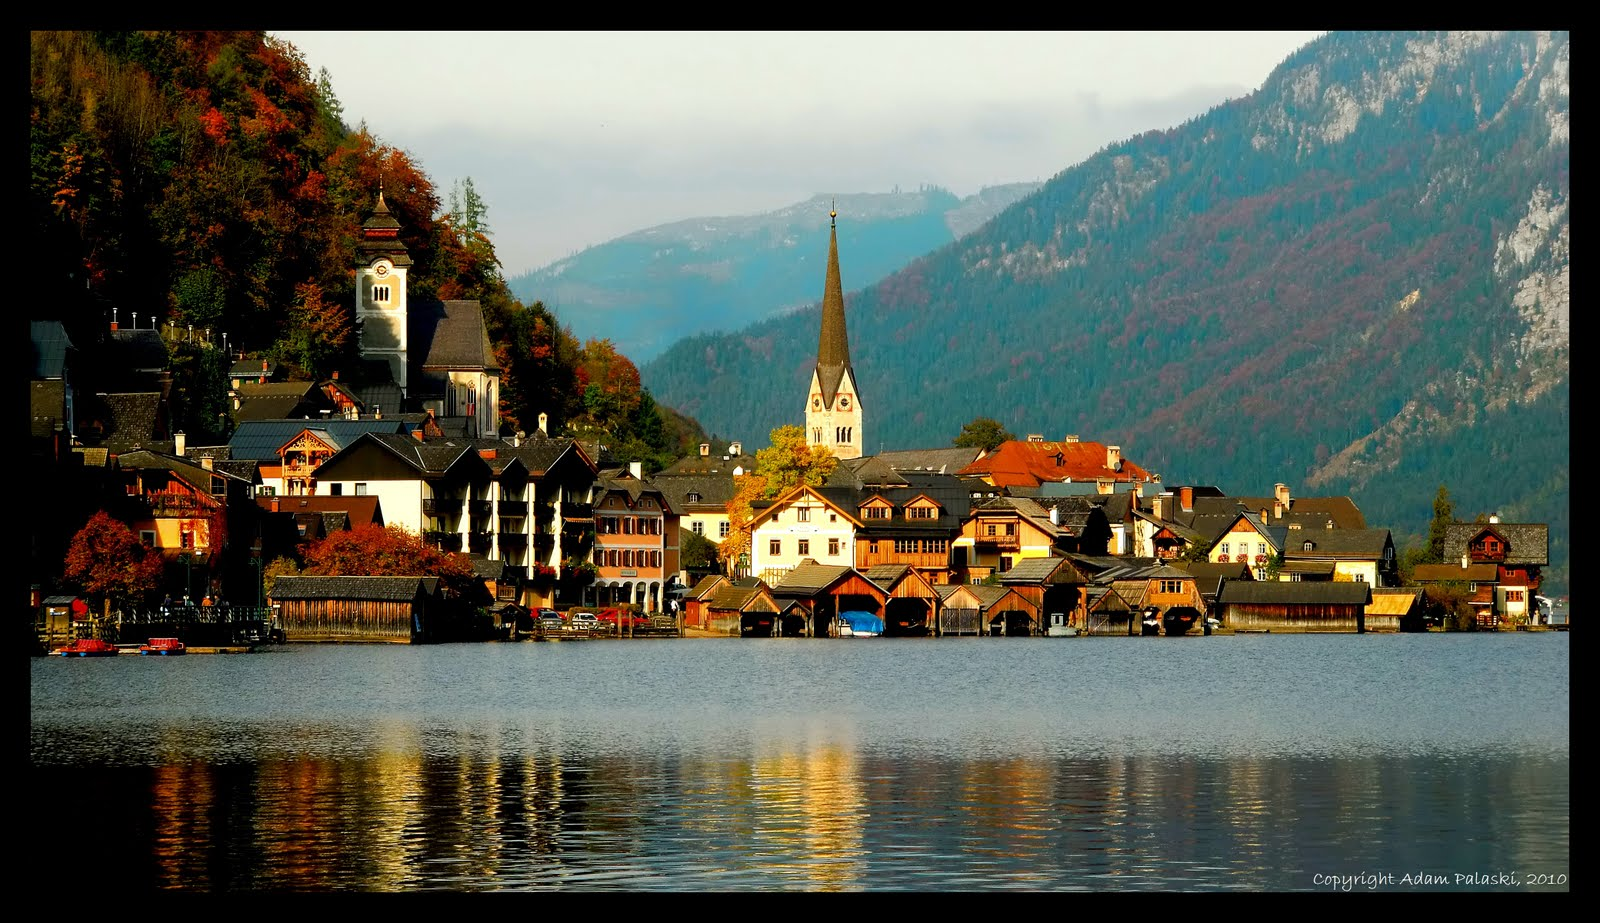 Fall in Hallstatt, Austria